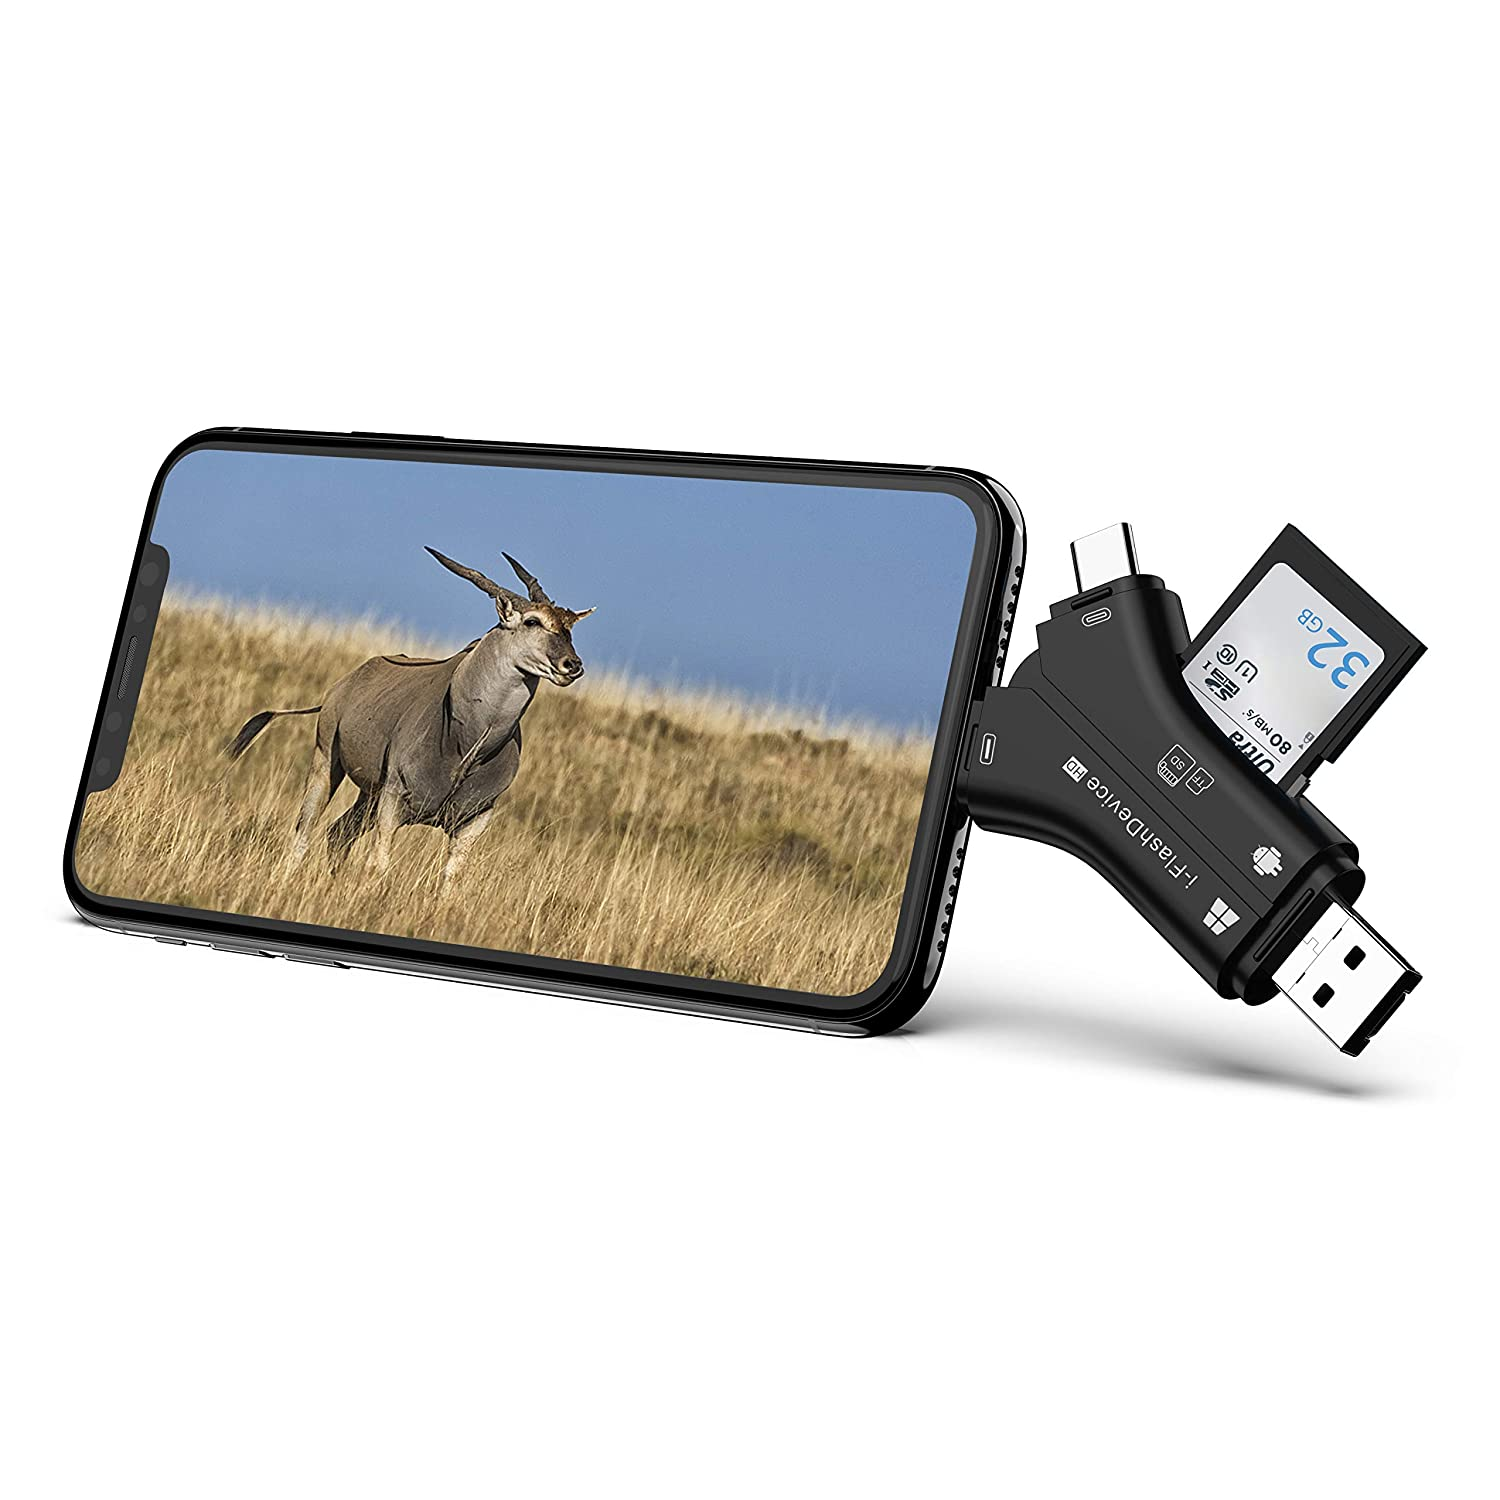 Campark Trail Camera SD Card Viewer Compatible with iPhone iPad Mac